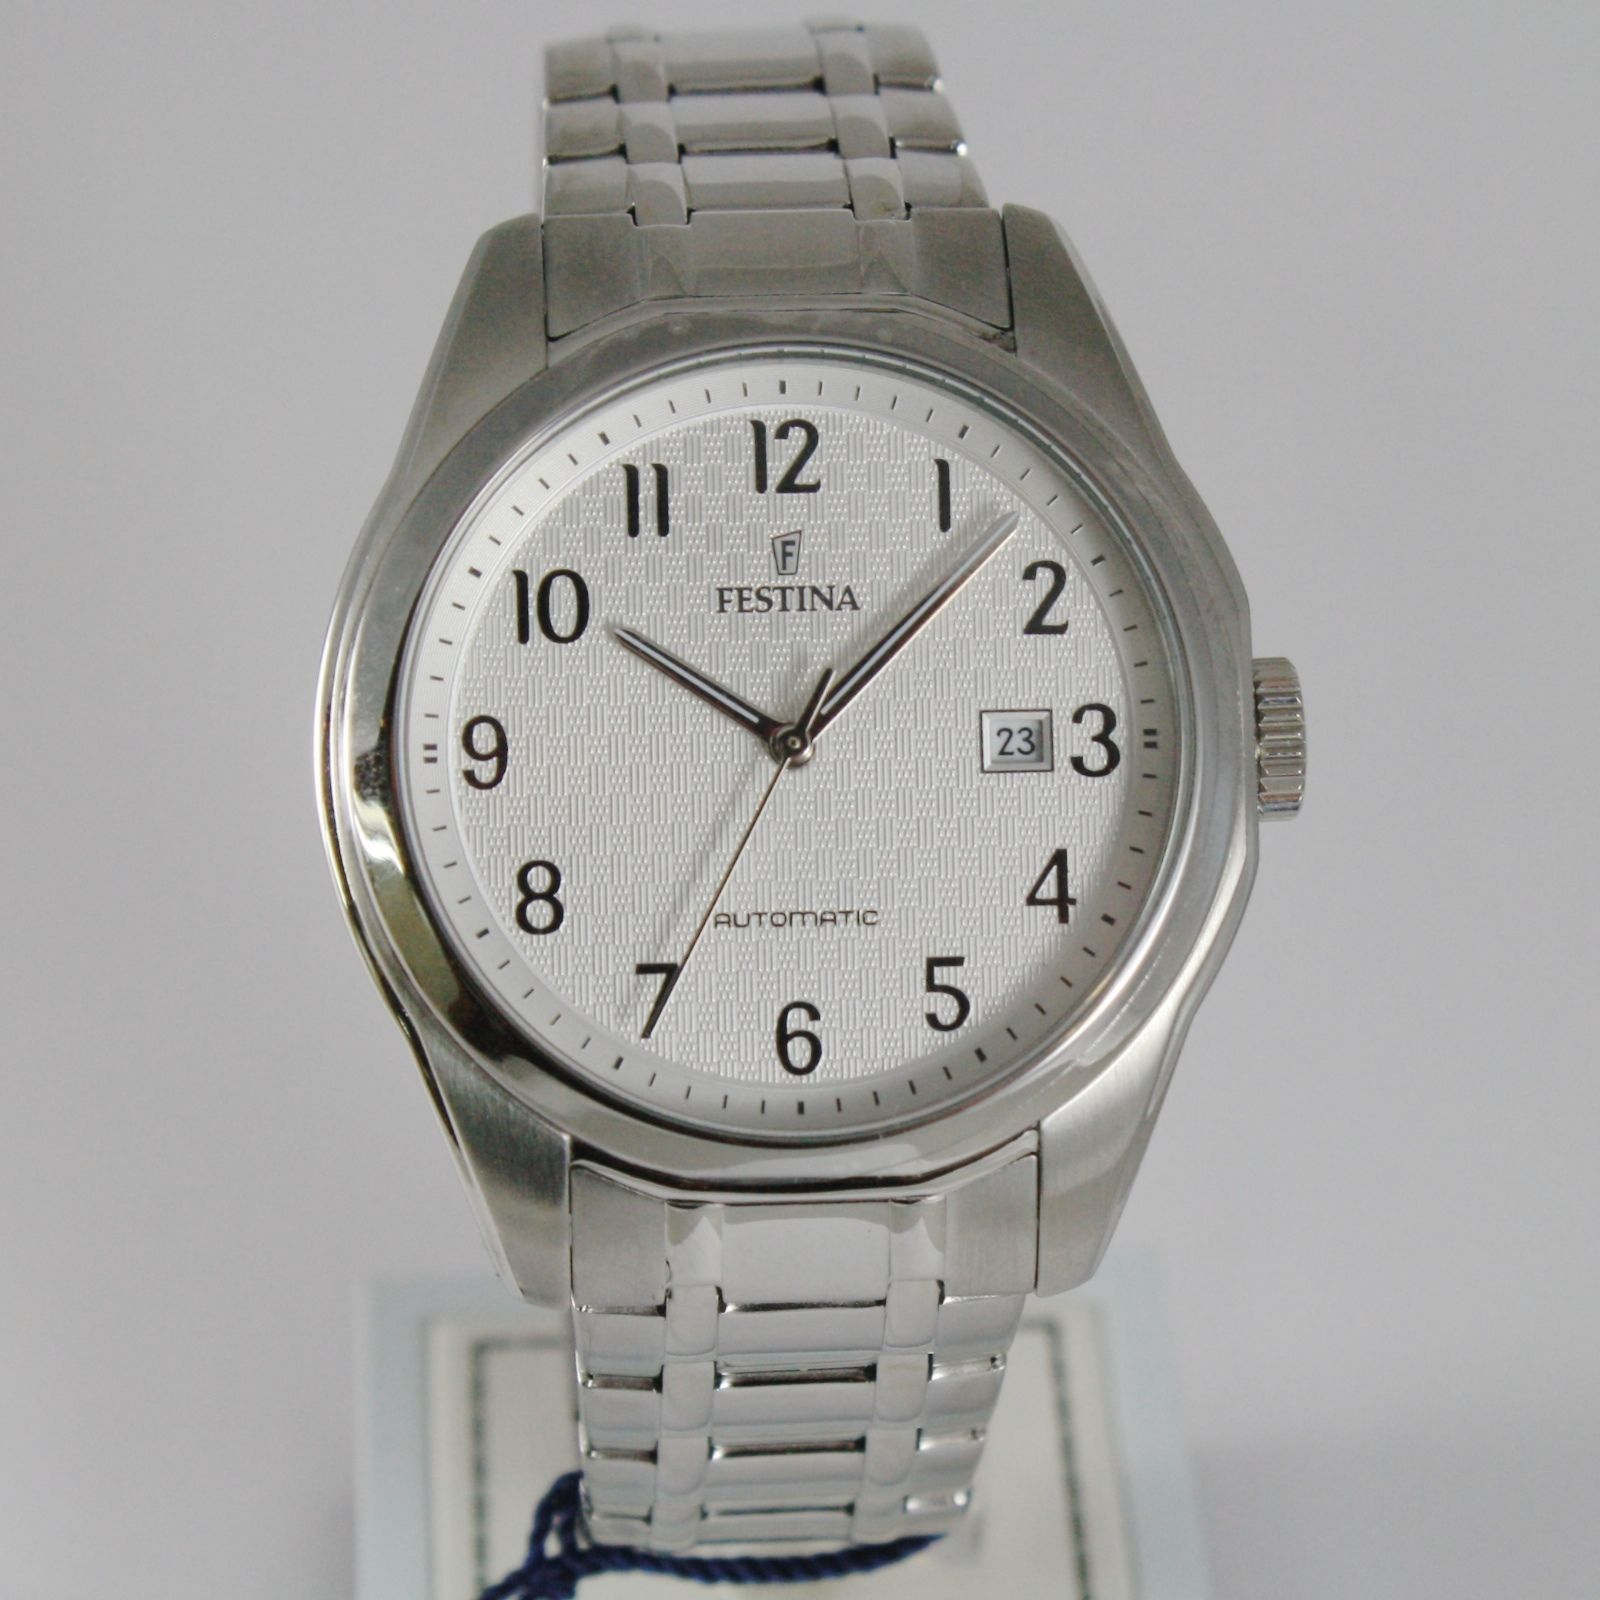 FESTINA WATCH AUTOMATIC MIYOTA MOVEMENT 21 JEWELS WHITE 44 MM CASE DATE 10 ATM